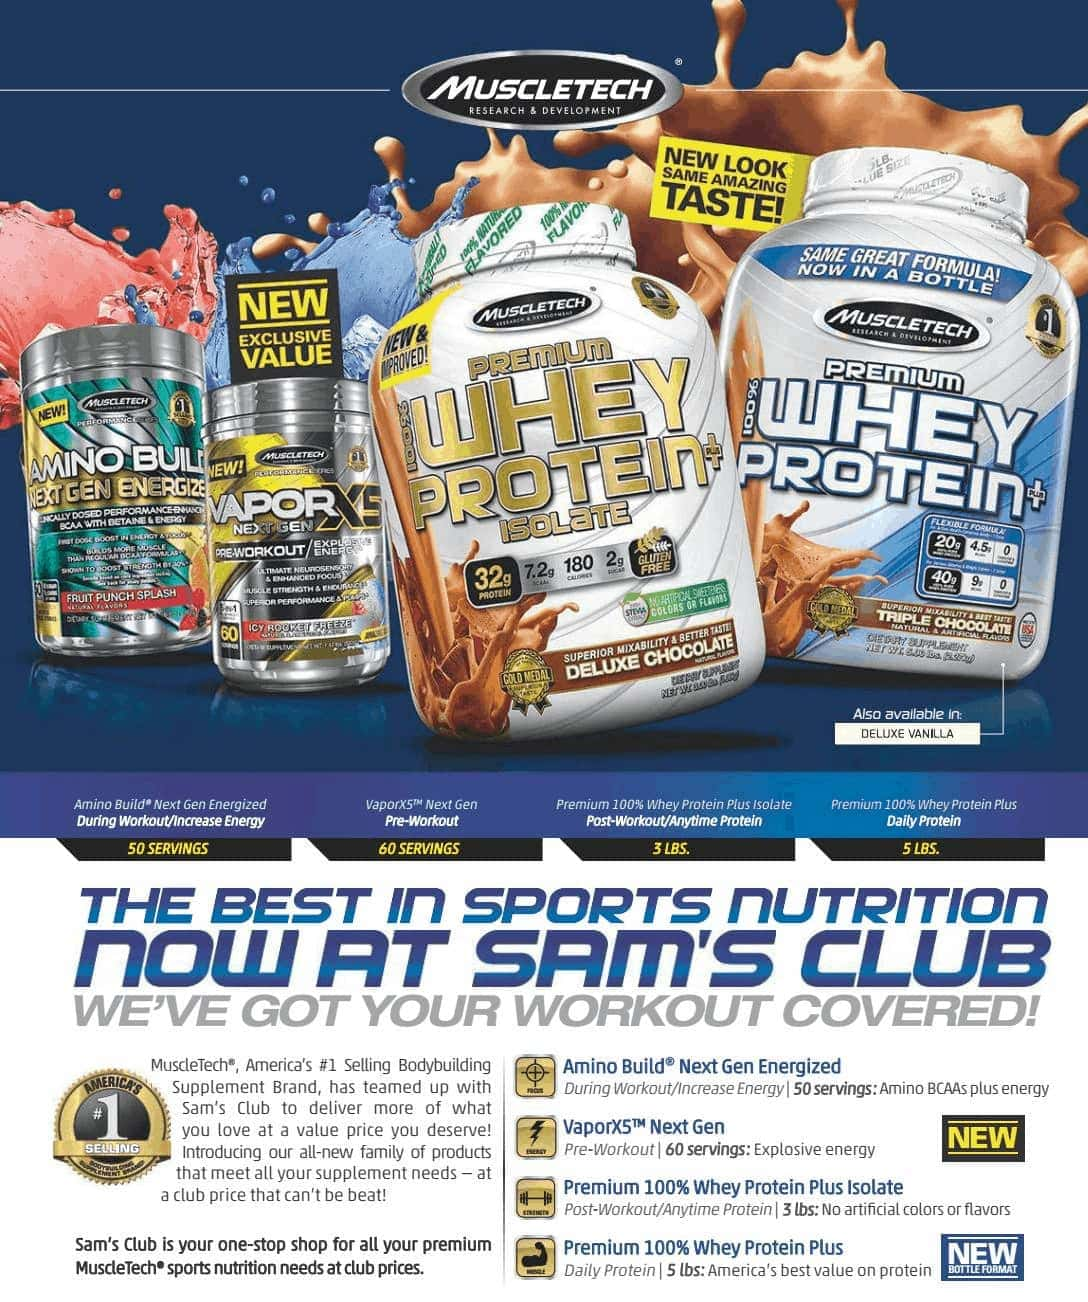 MuscleTech - Premium 100% Whey Protein + Isolate (3 Lbs) - page 65